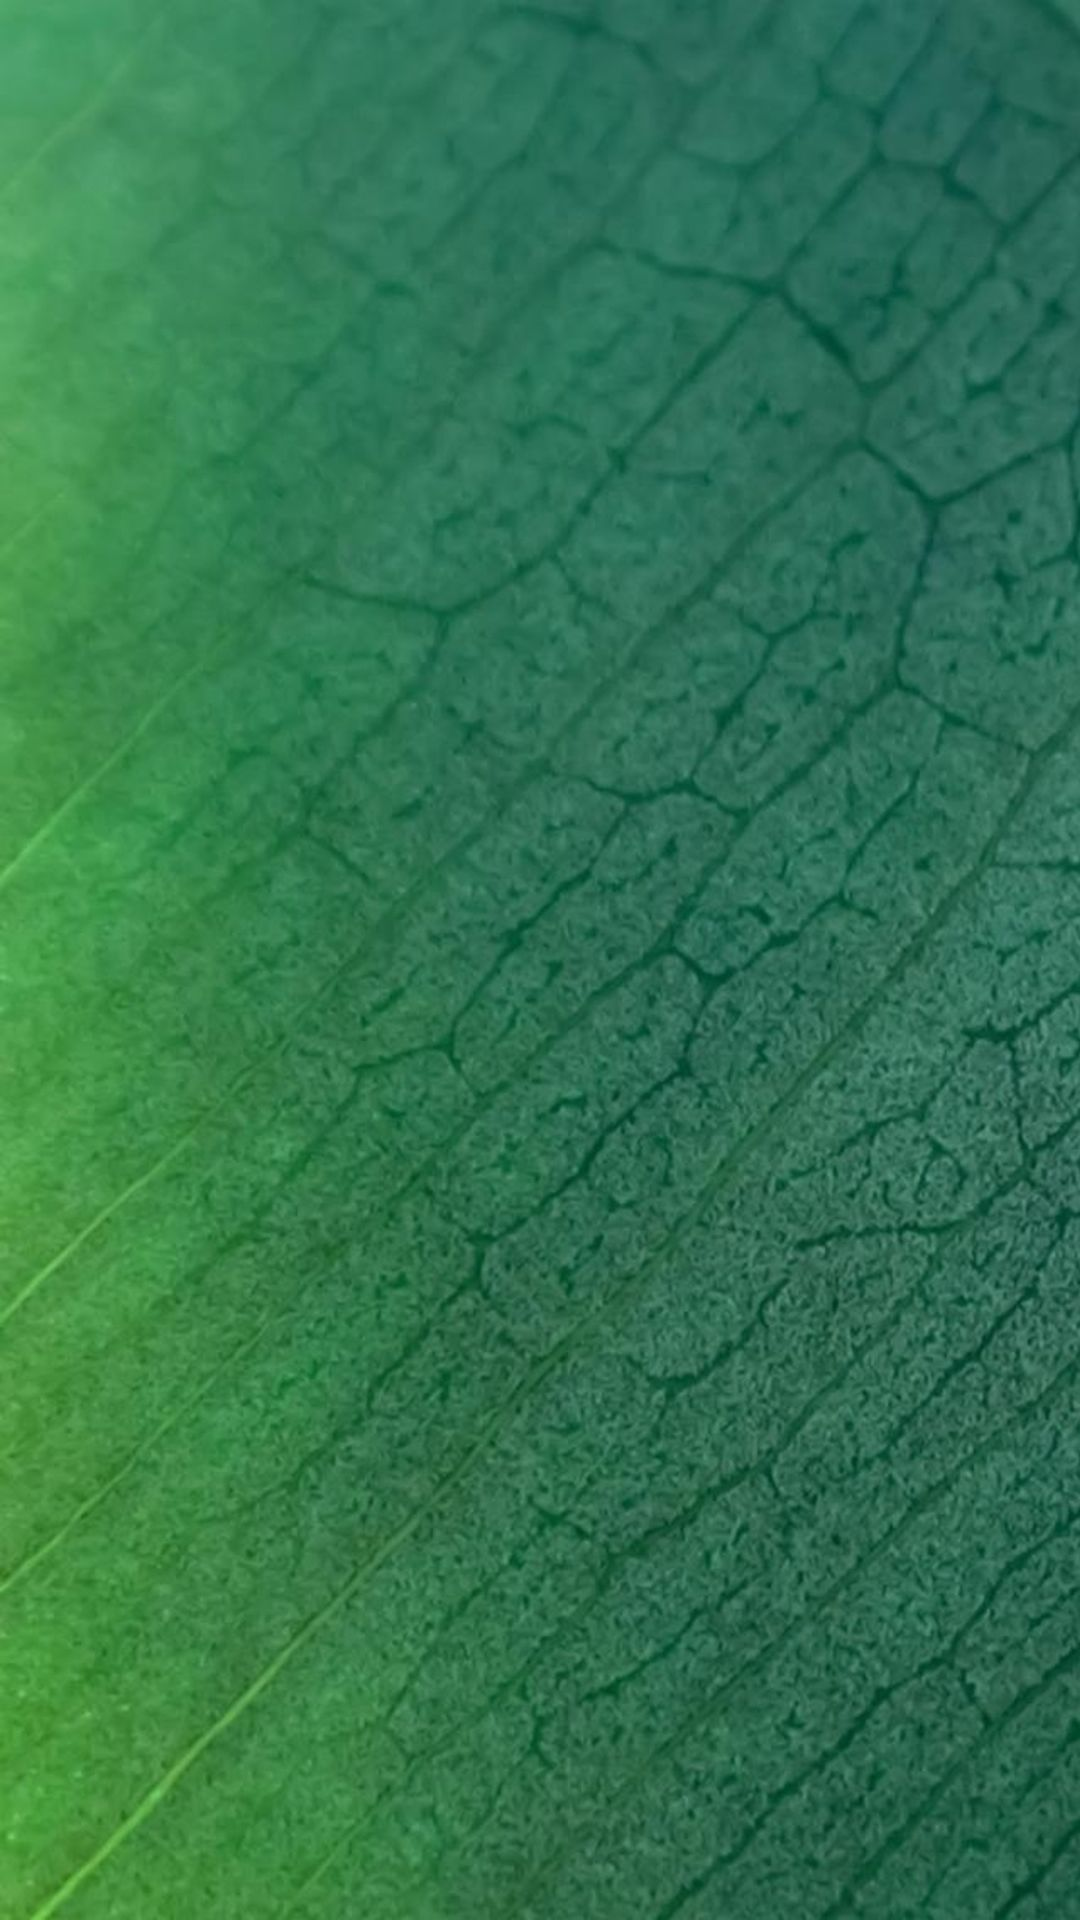 Pure Clear Leaf Texture Background iPhone 6 wallpaper